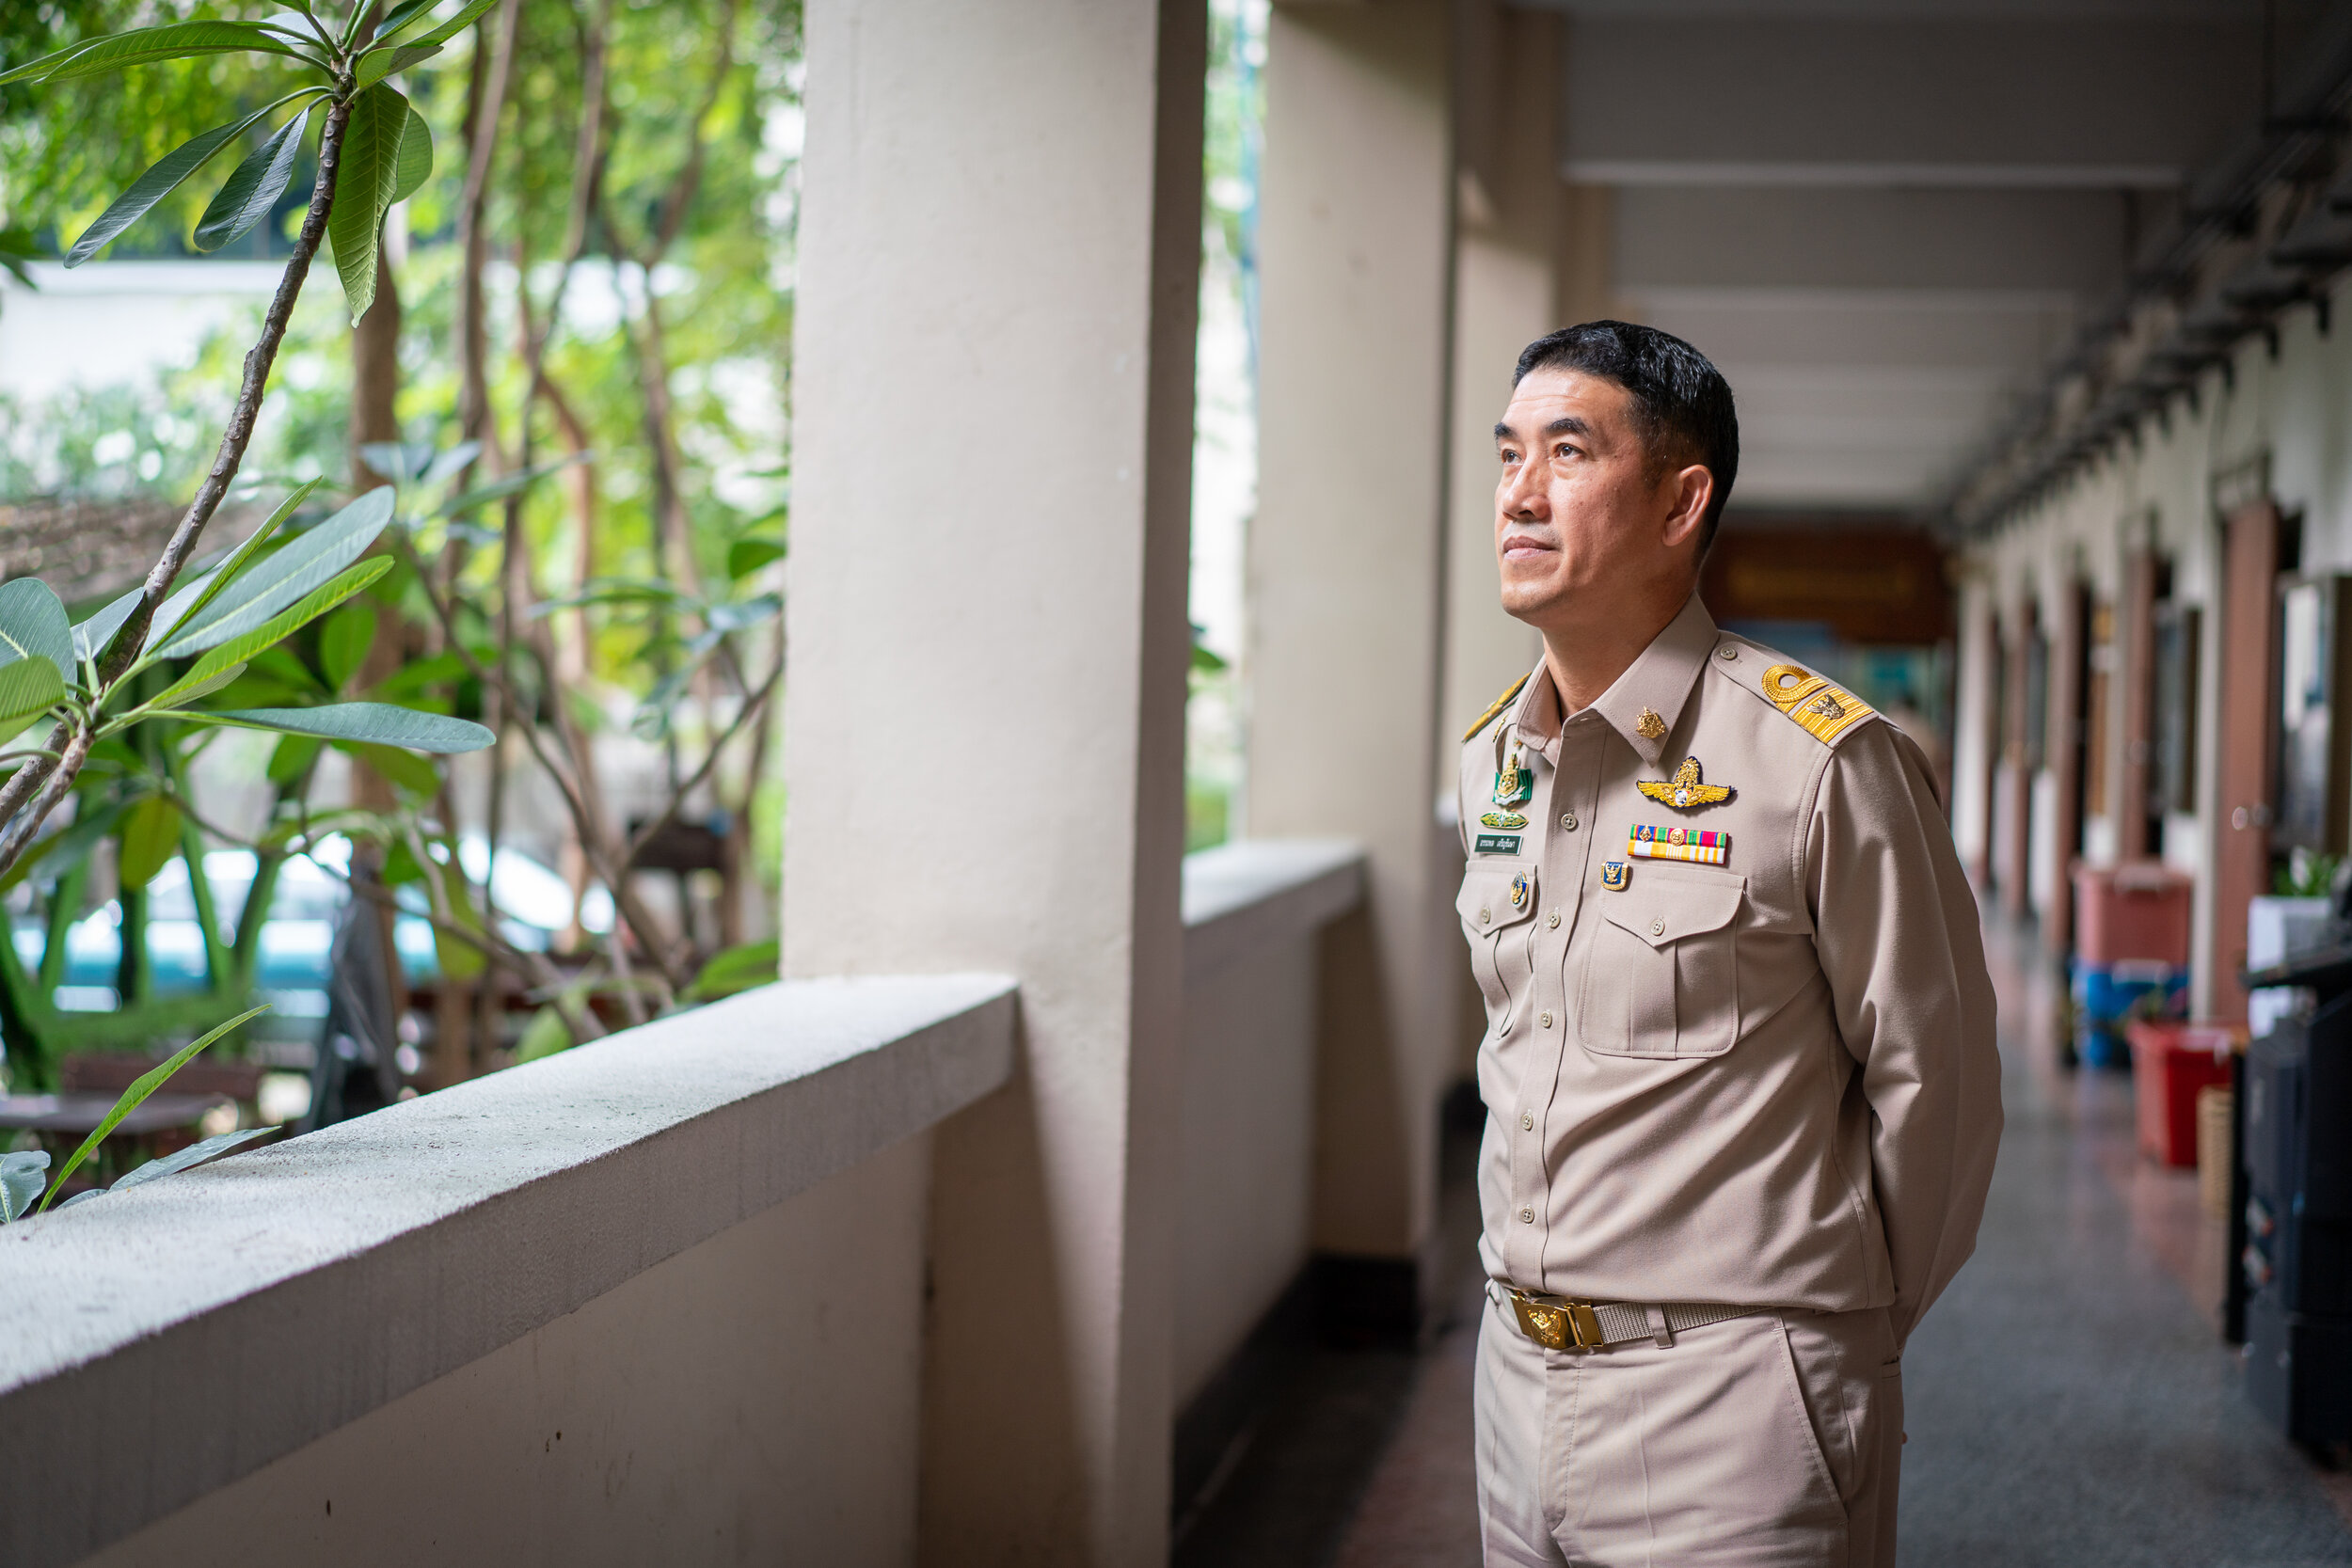 For wildfire emergencies, call 911 immediately or contact a local forestry field unit office. Growing The Future Of Thailand Royal Forestry Department Director General Attapol Charoenchansa 5000s Magazine